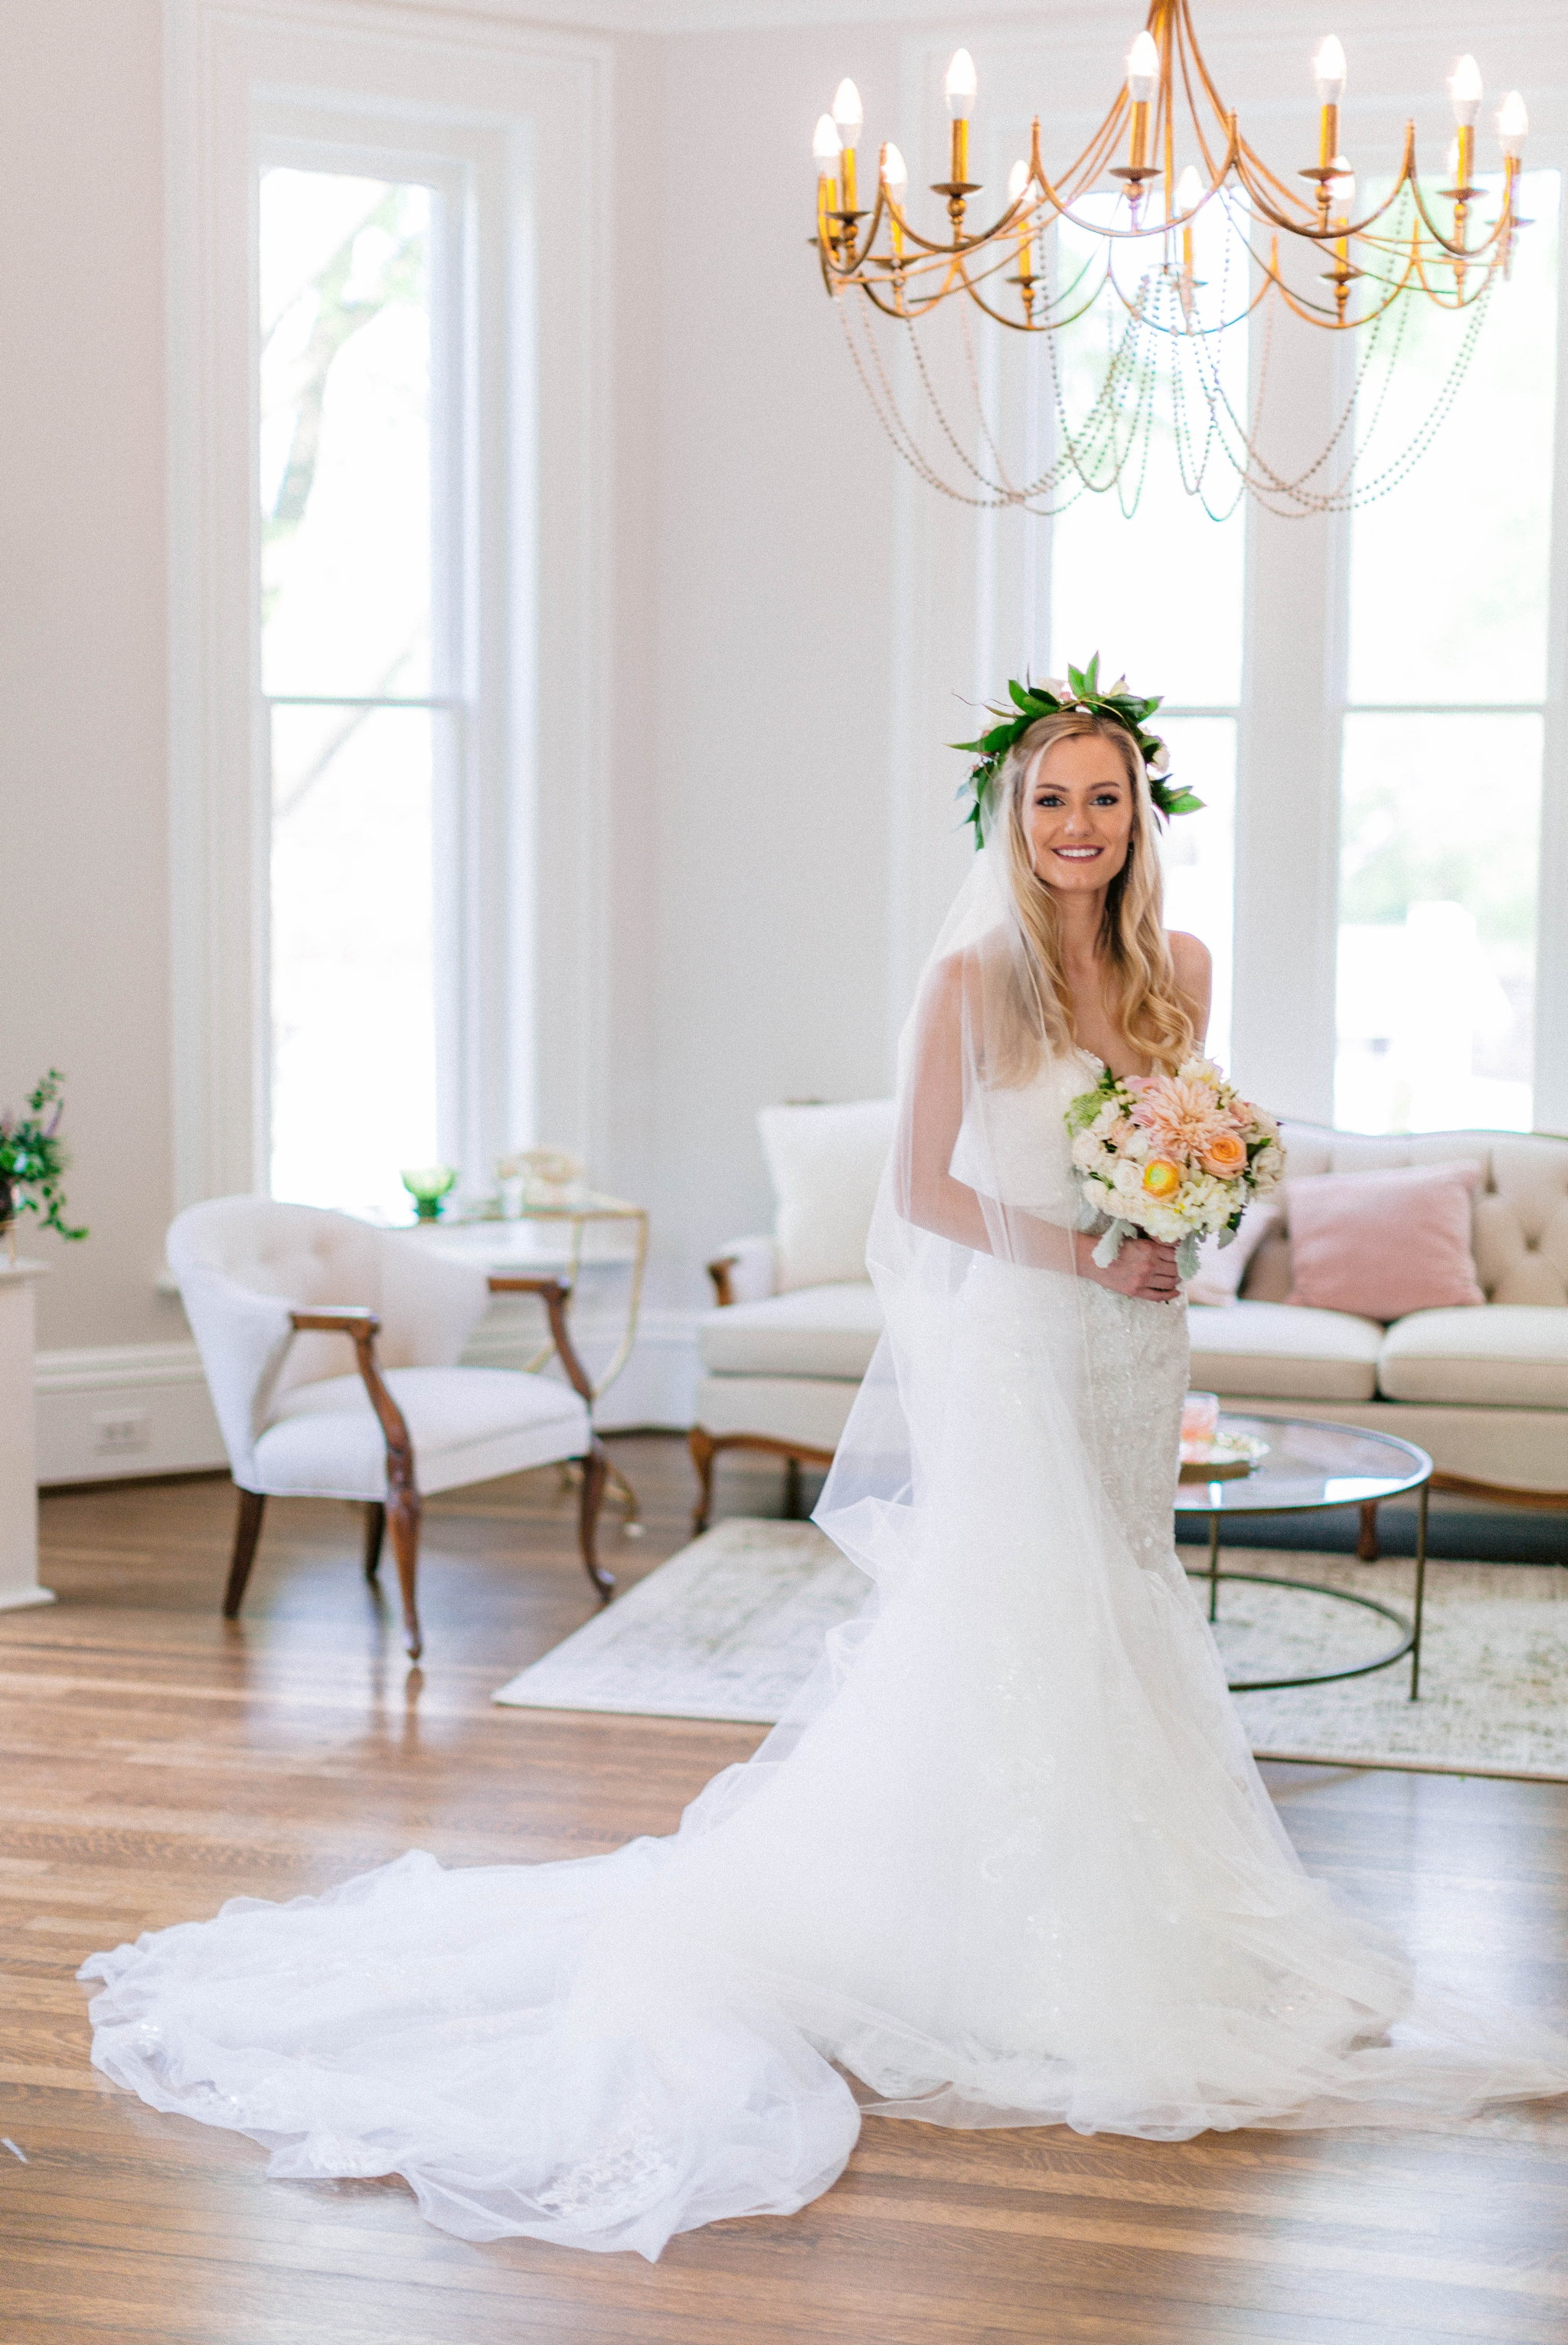 Indoor Bridal Portraits in an all white room at a luxury estate with natural light before the ceremony - Bride is wearing a Hawaiian Flower Crown and a cathedral veil in a Wedding Gown by Stella York and standing in the doorway with a golden chandelier with vintage furniture in the background - Honolulu Oahu Hawaii Wedding Photographer - Johanna Dye Photography